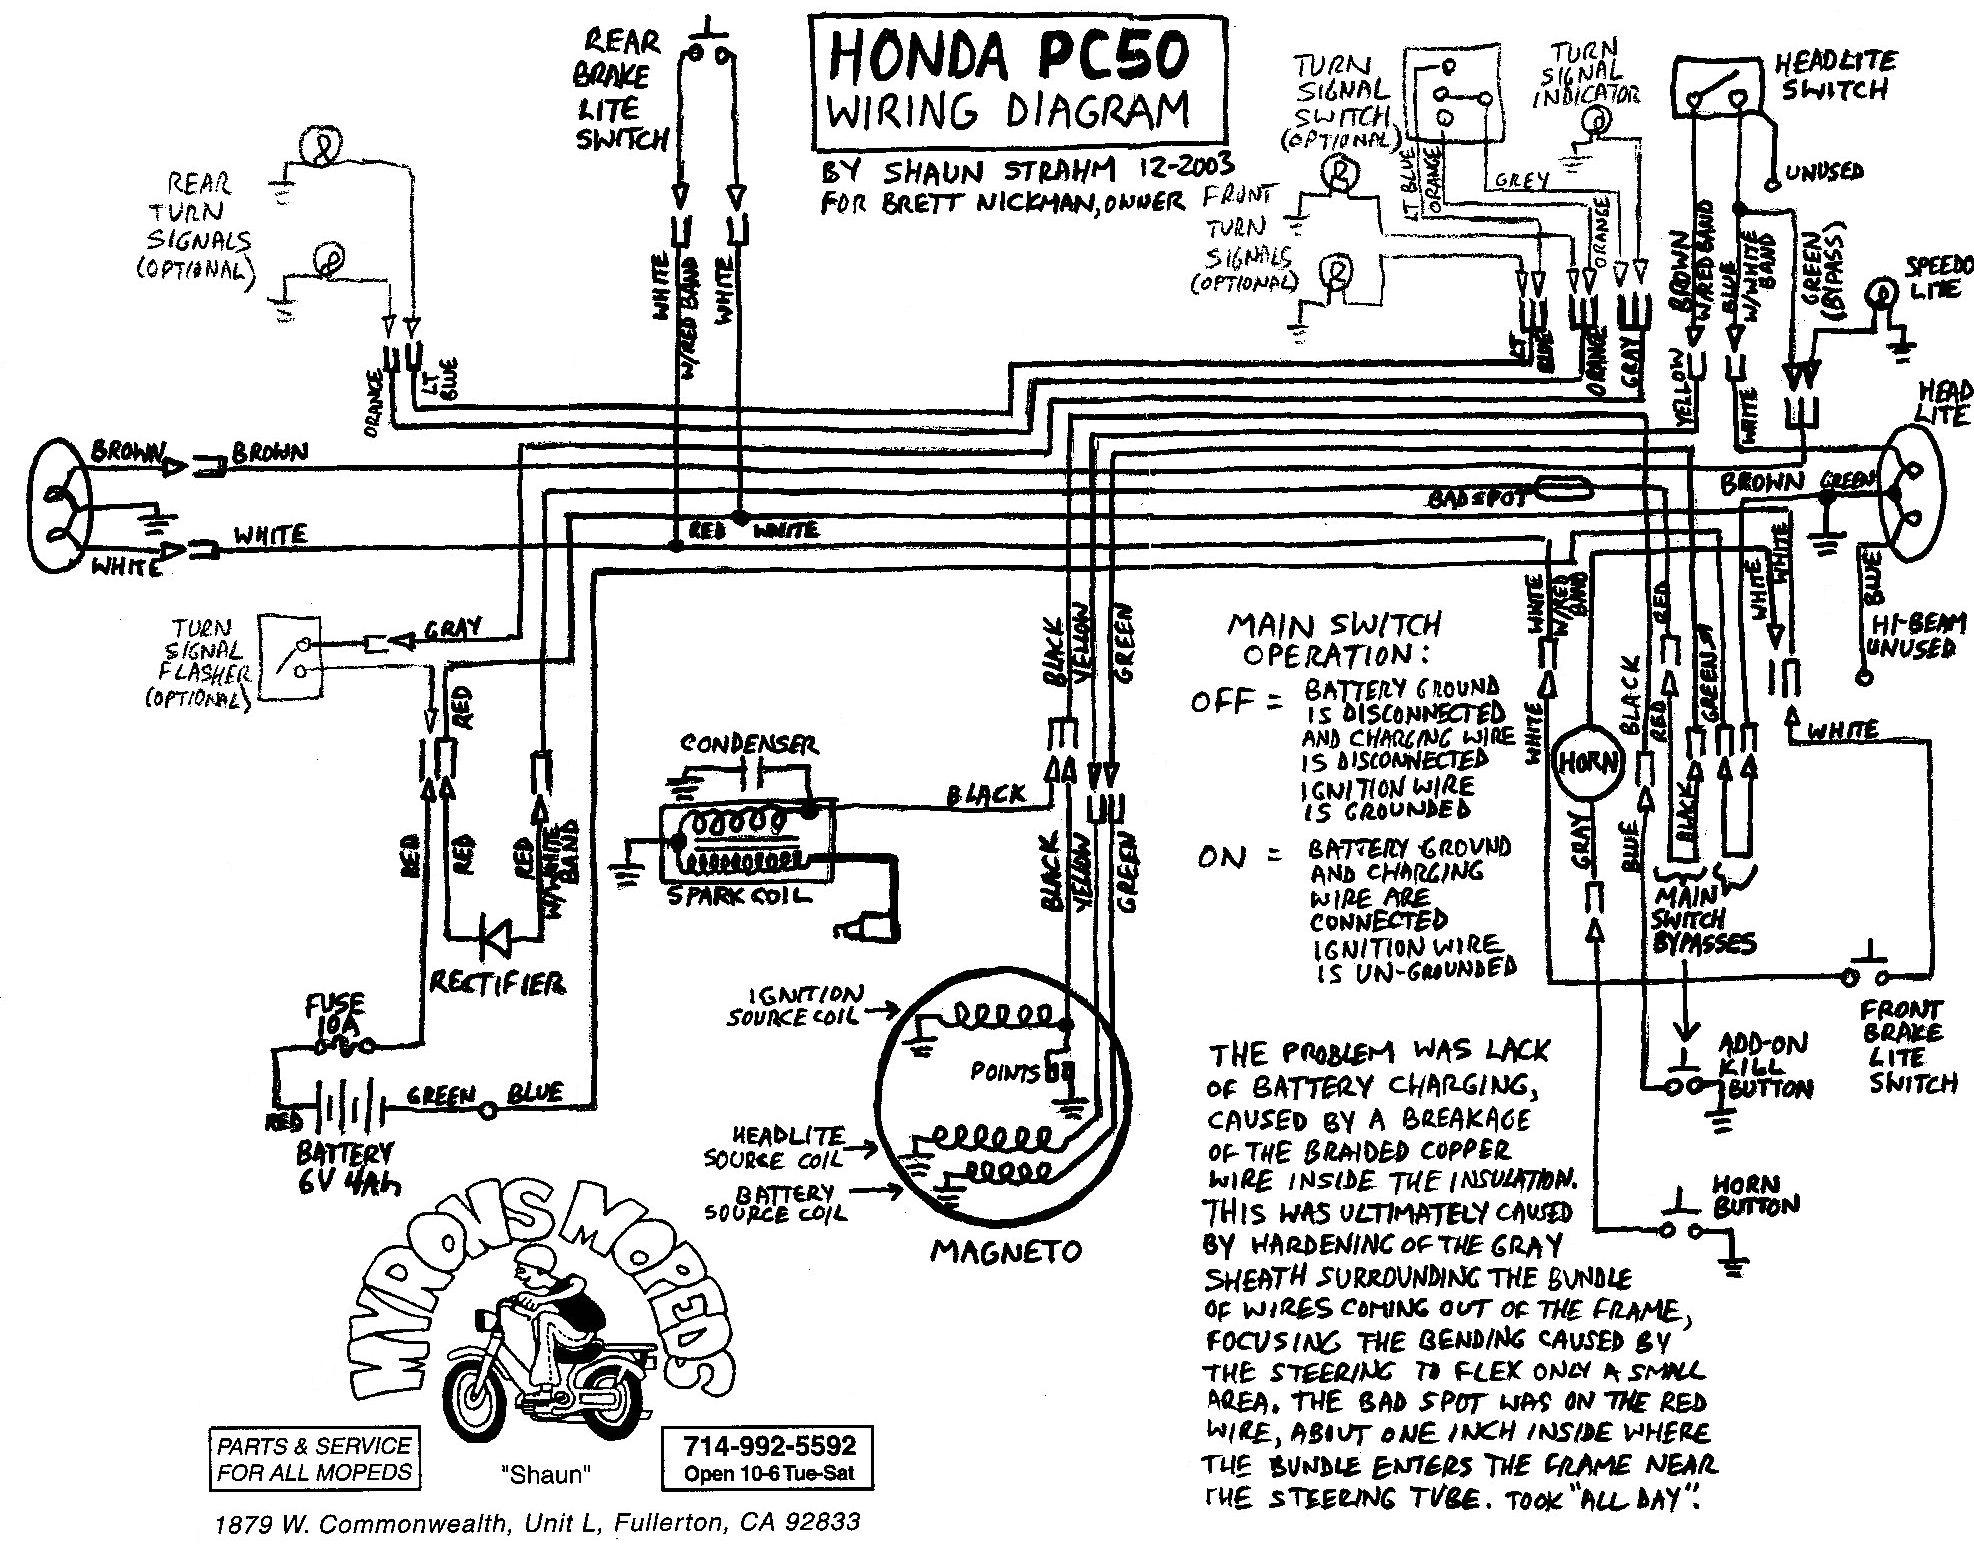 Nc50 Wiring Diagram Page 3 And Schematics Cl70 Honda Hobbit Moped Cdi Get Free Image About Express Exhaust